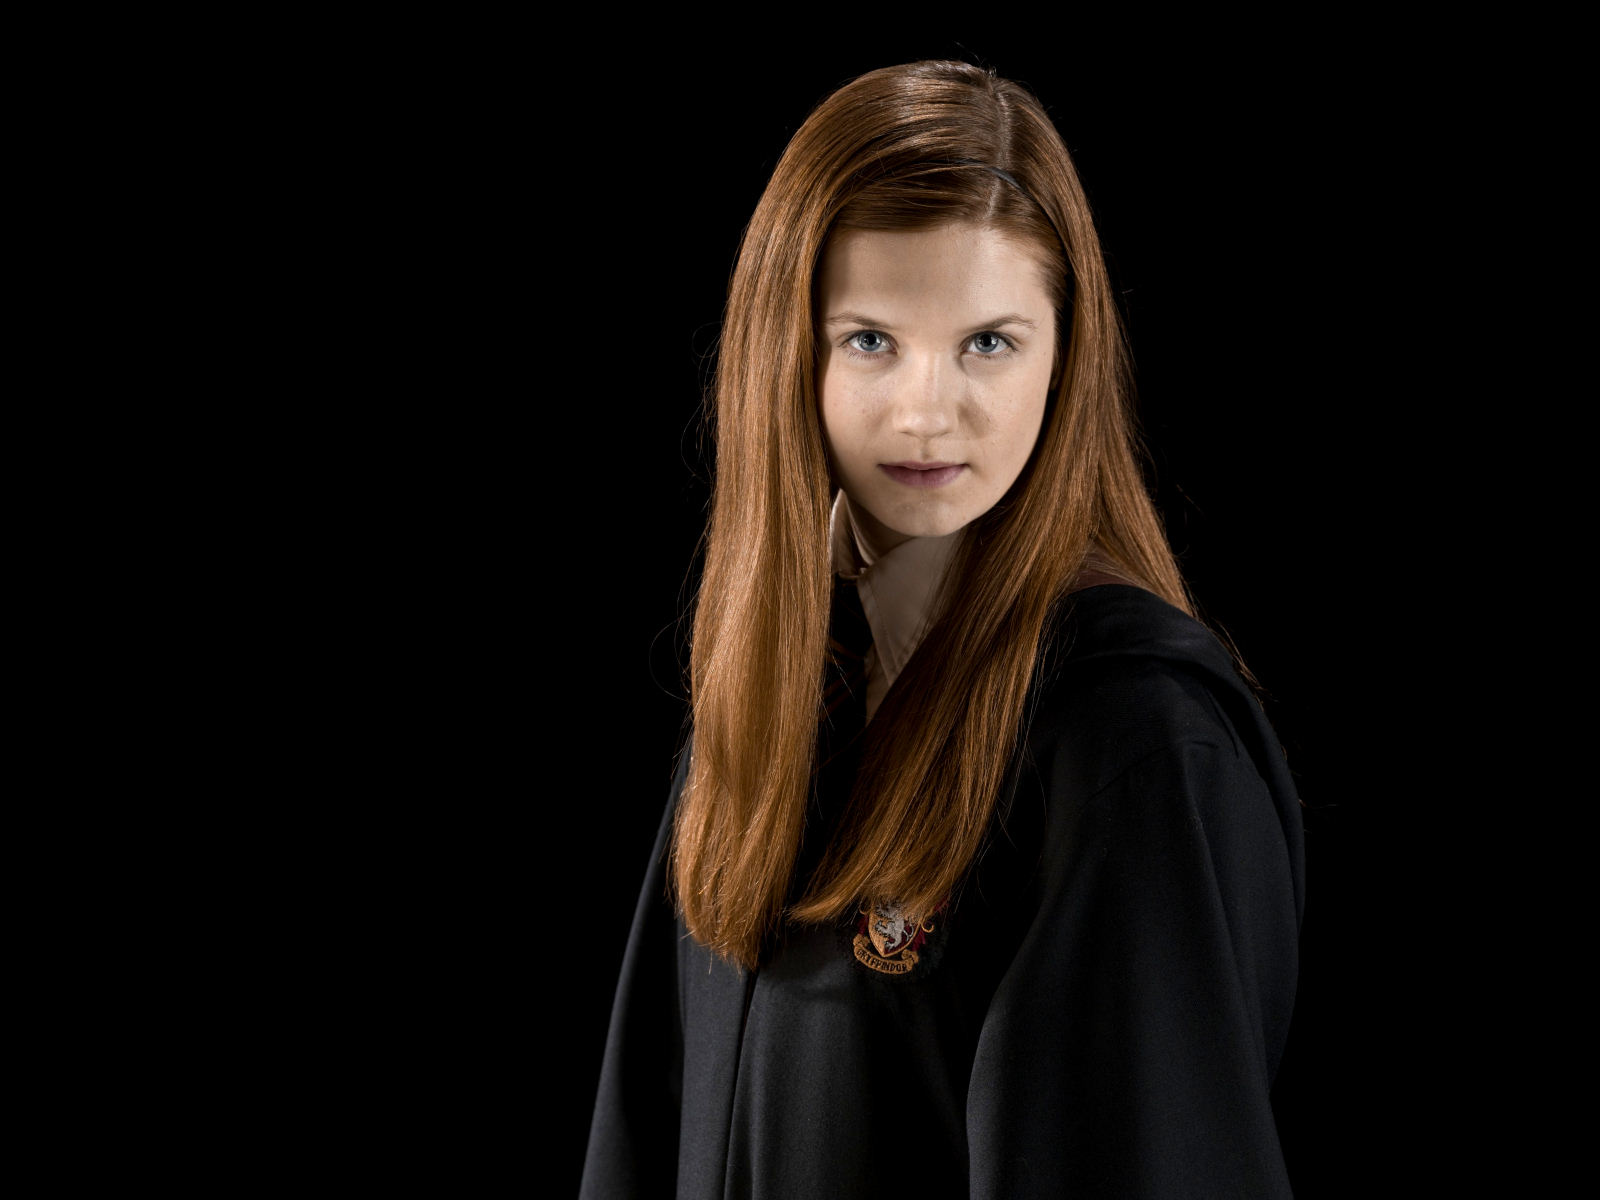 1600x1200 - Bonnie Wright Wallpapers 24